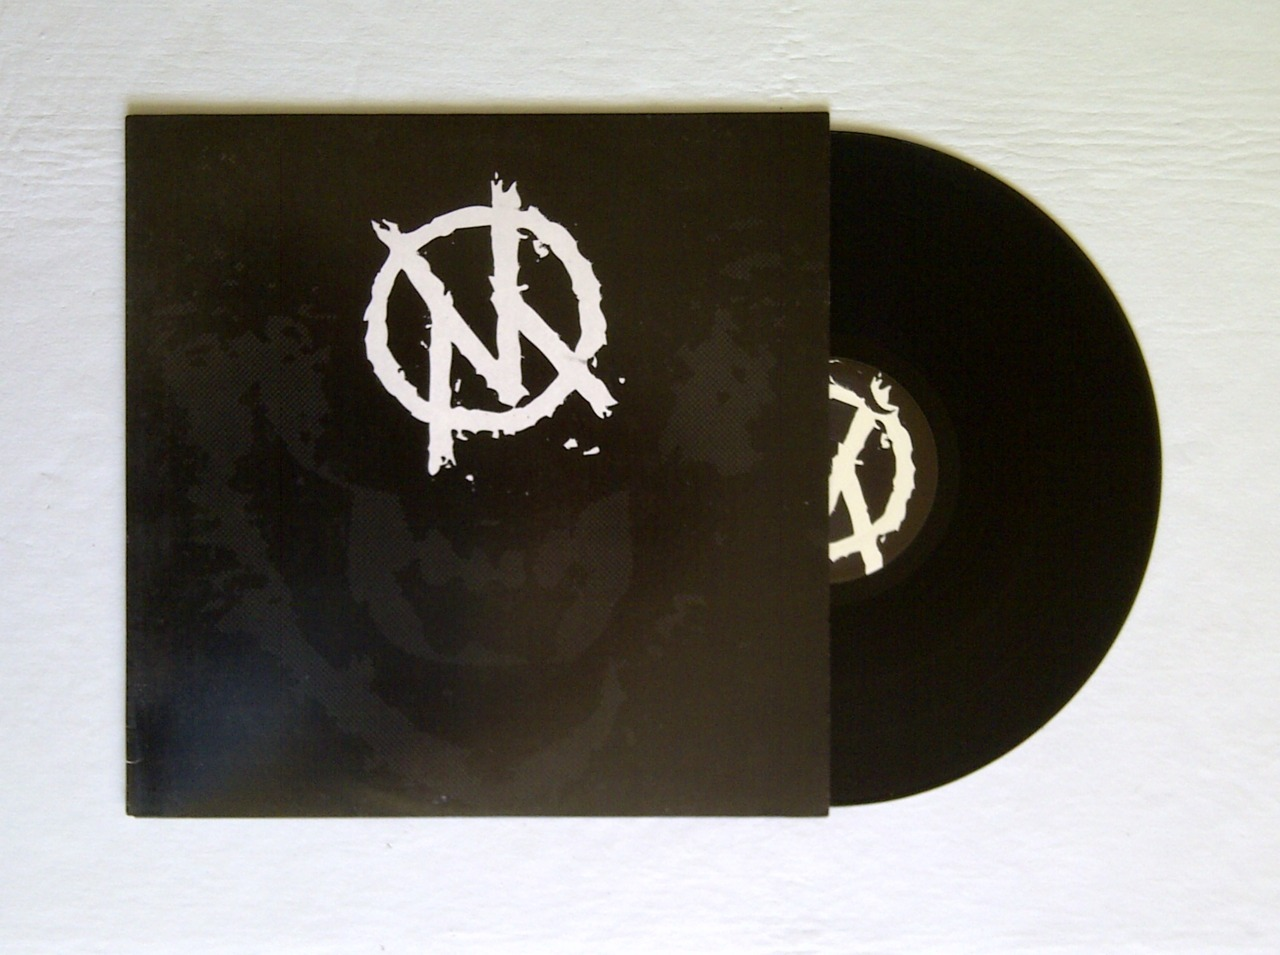 "VIOLENT MINDS - We Are Nothing 12"" Deranged Records 10€ botedge@gmail.com"